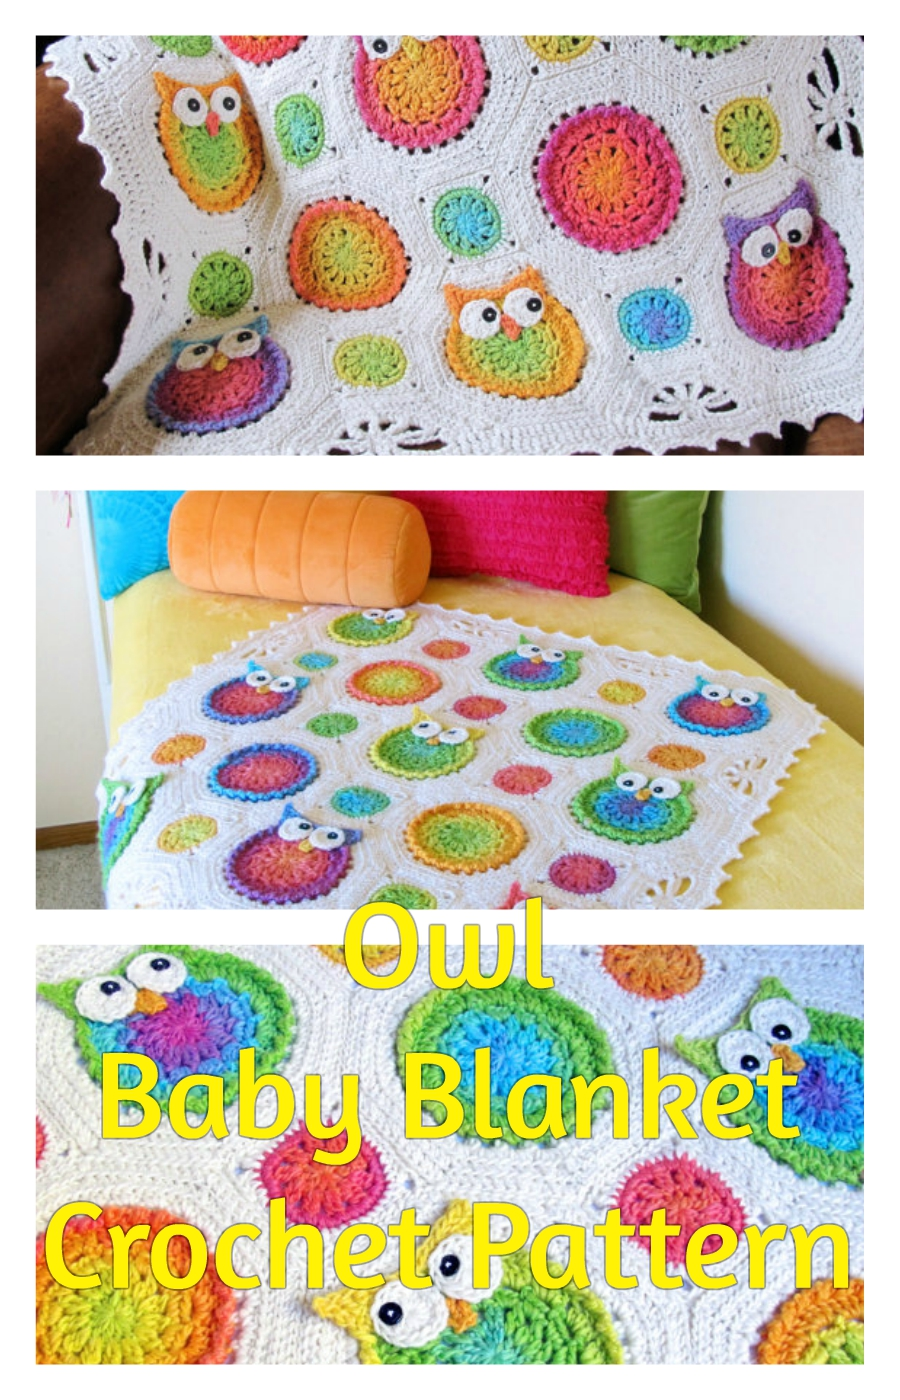 Owl Baby Blanket Crochet Pattern | Perfect Owl Loving Bedroom Accesory